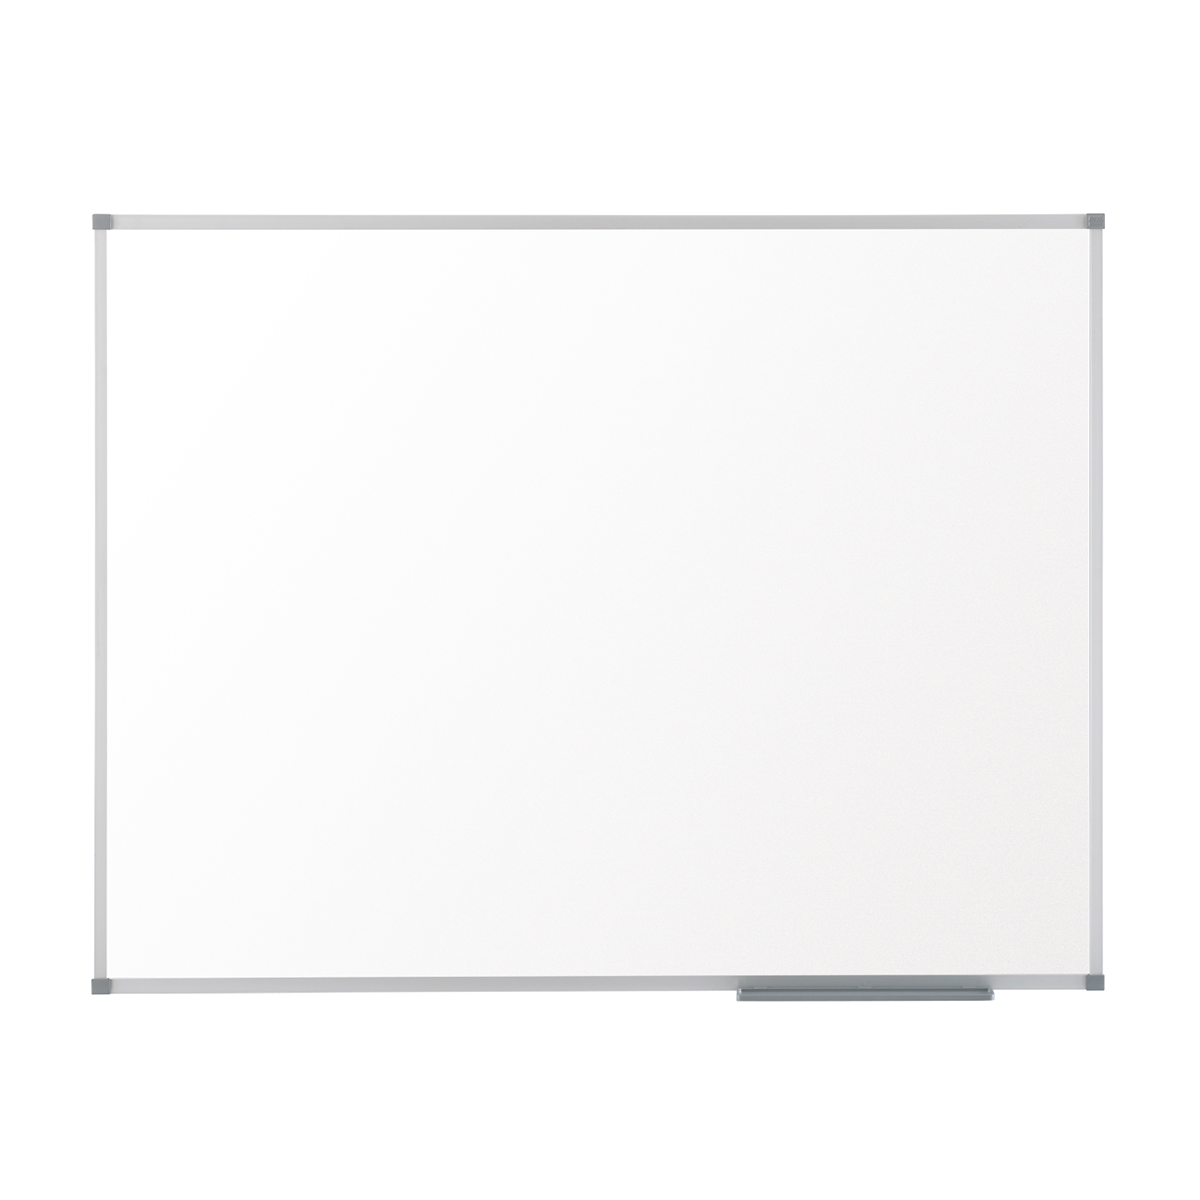 Nobo 1905202 Basic Melamine Non Magnetic Whiteboard with Basic Trim 900 x 600mm